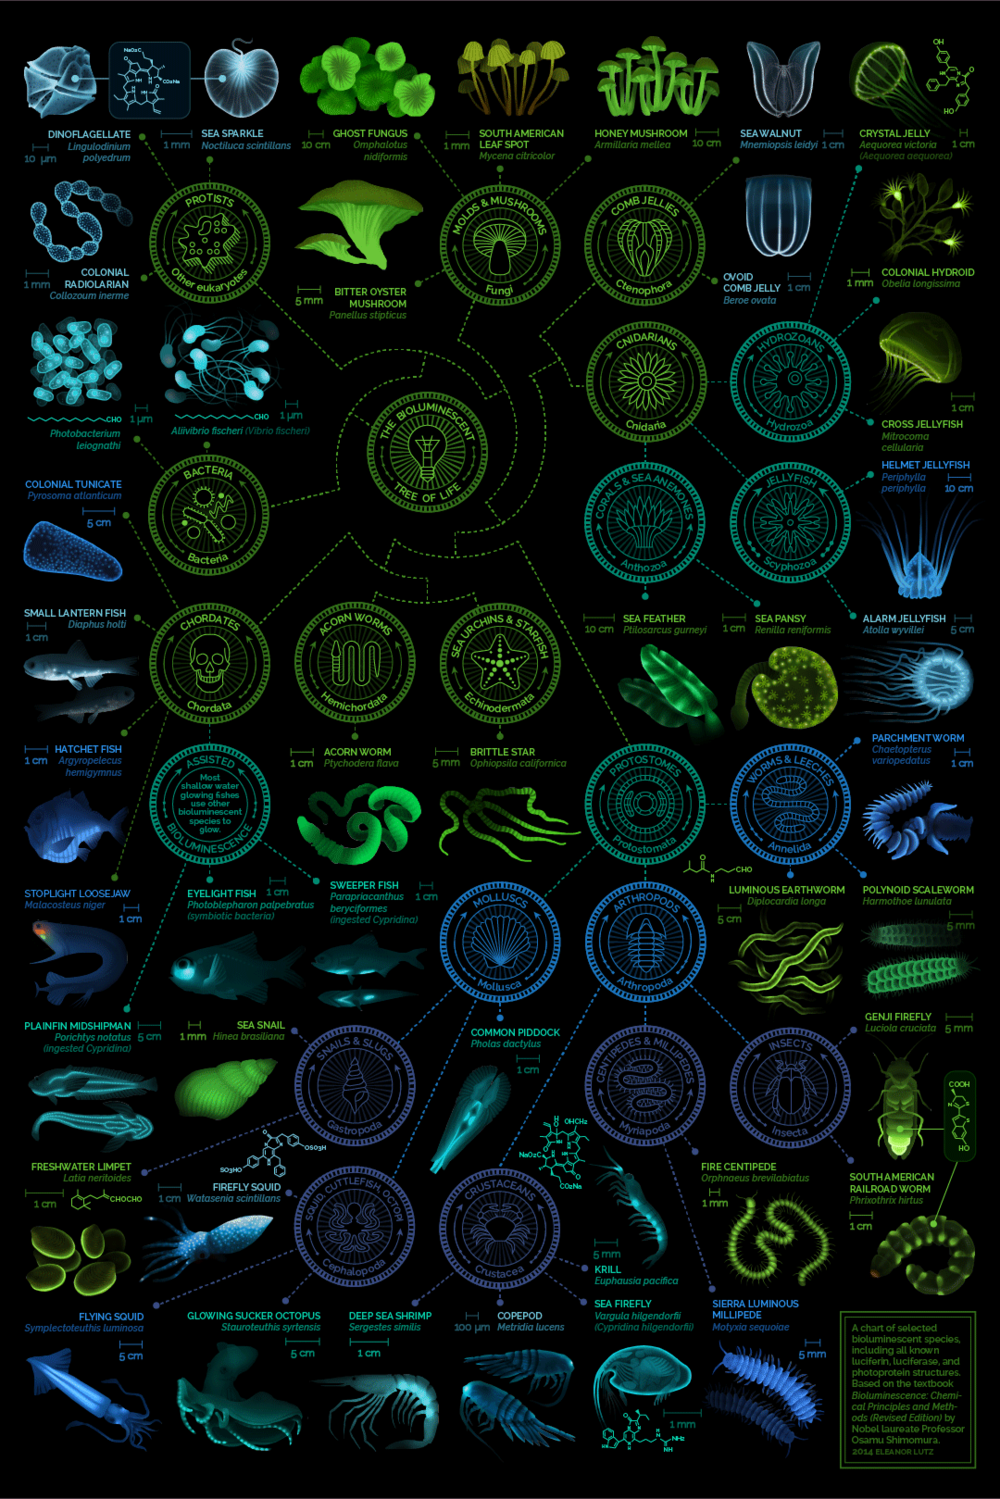 A beautiful chart of biolumescent creatures